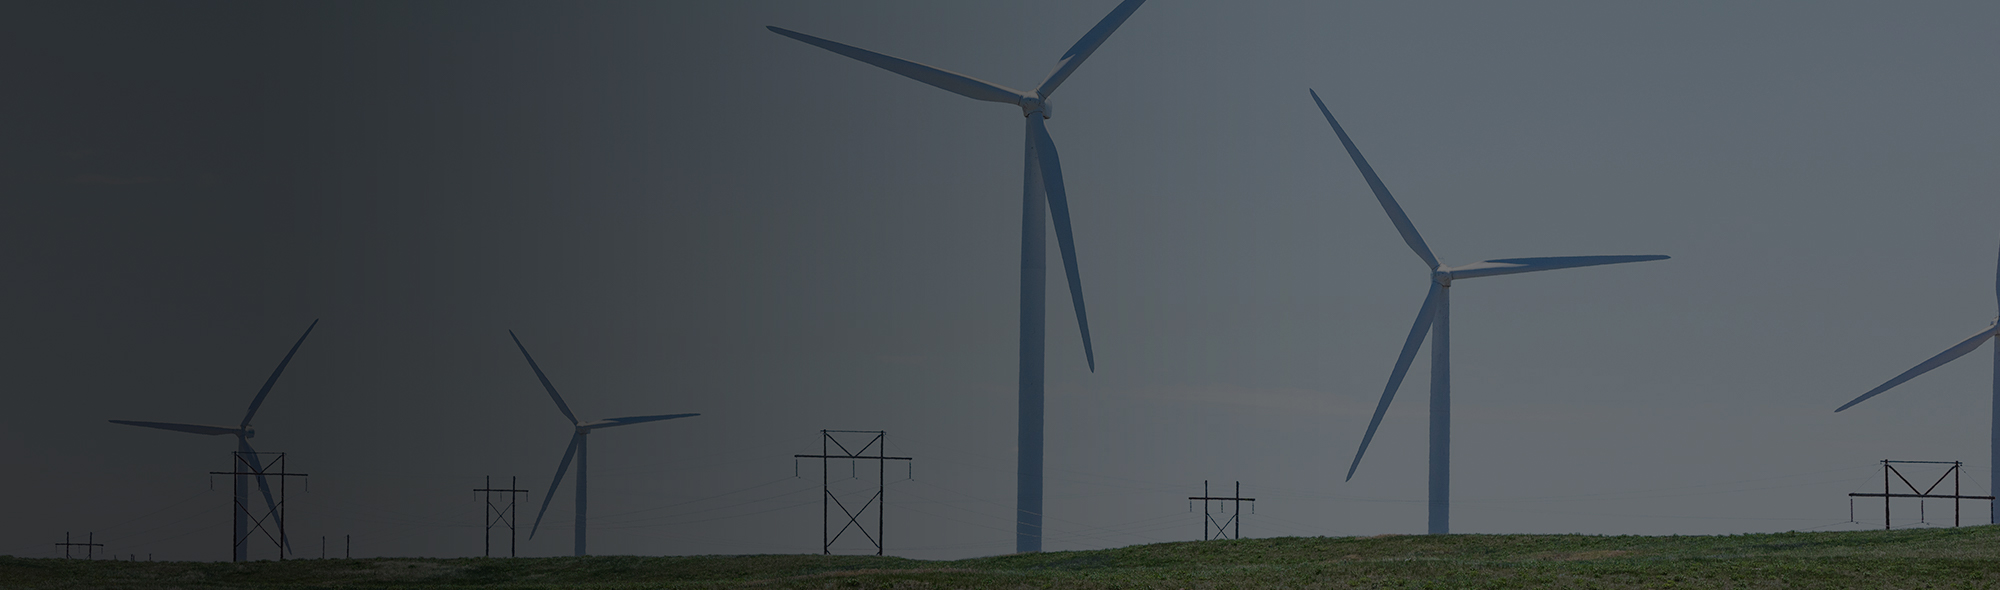 Image of a windmill farm